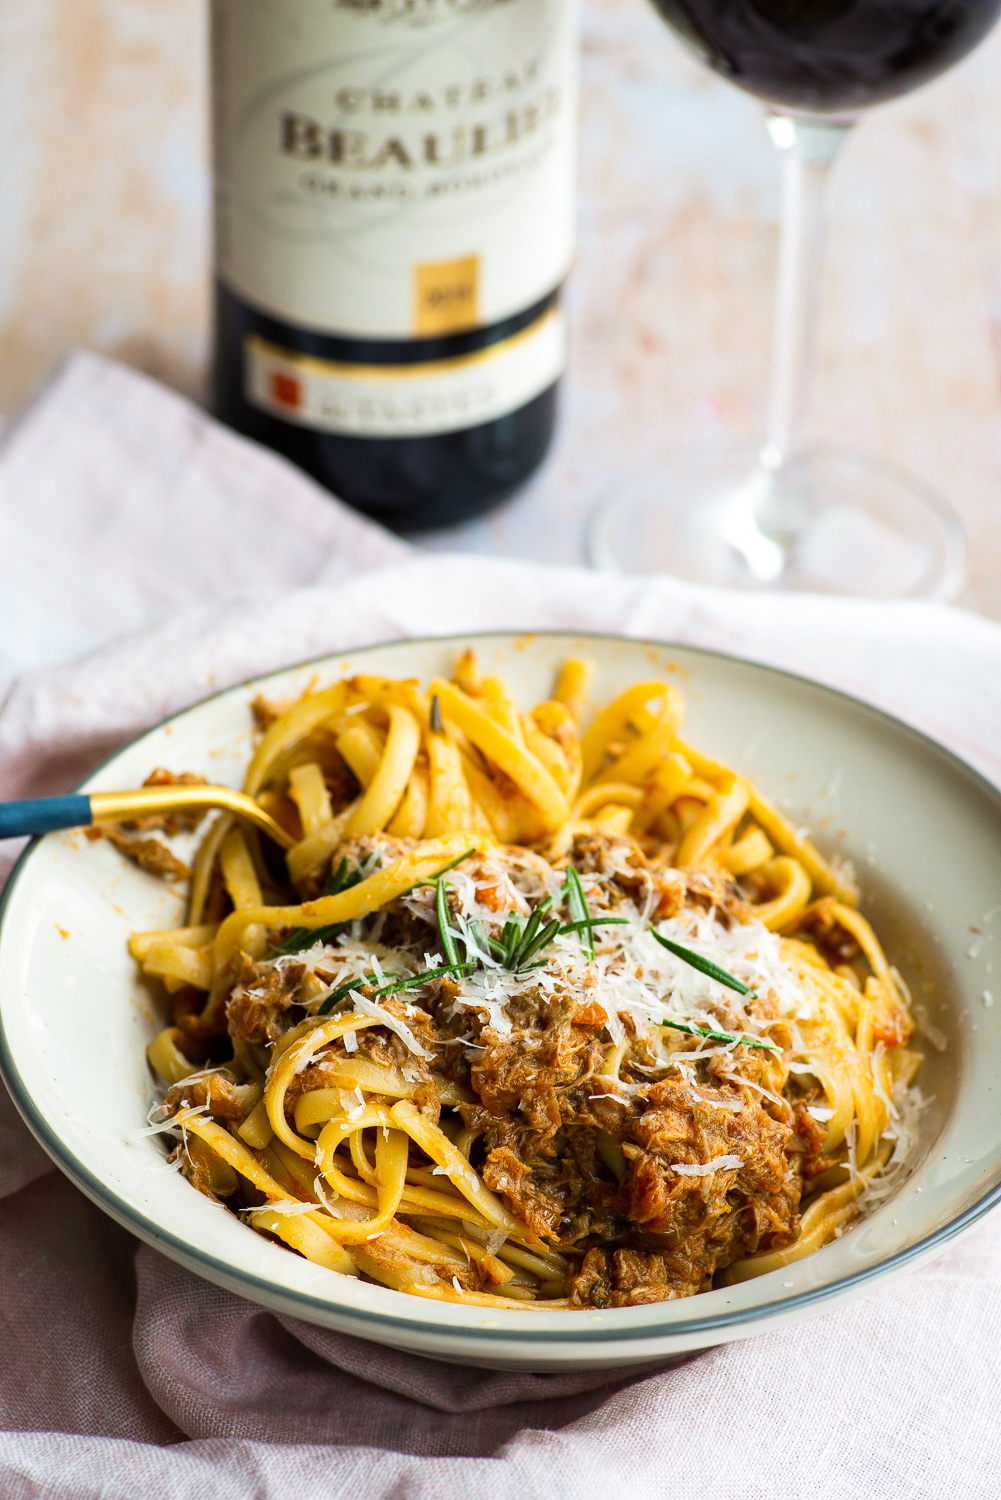 Linguine with slow cooked chicken sauce paired with Chateau Beaulieu red wine from Bordeaux